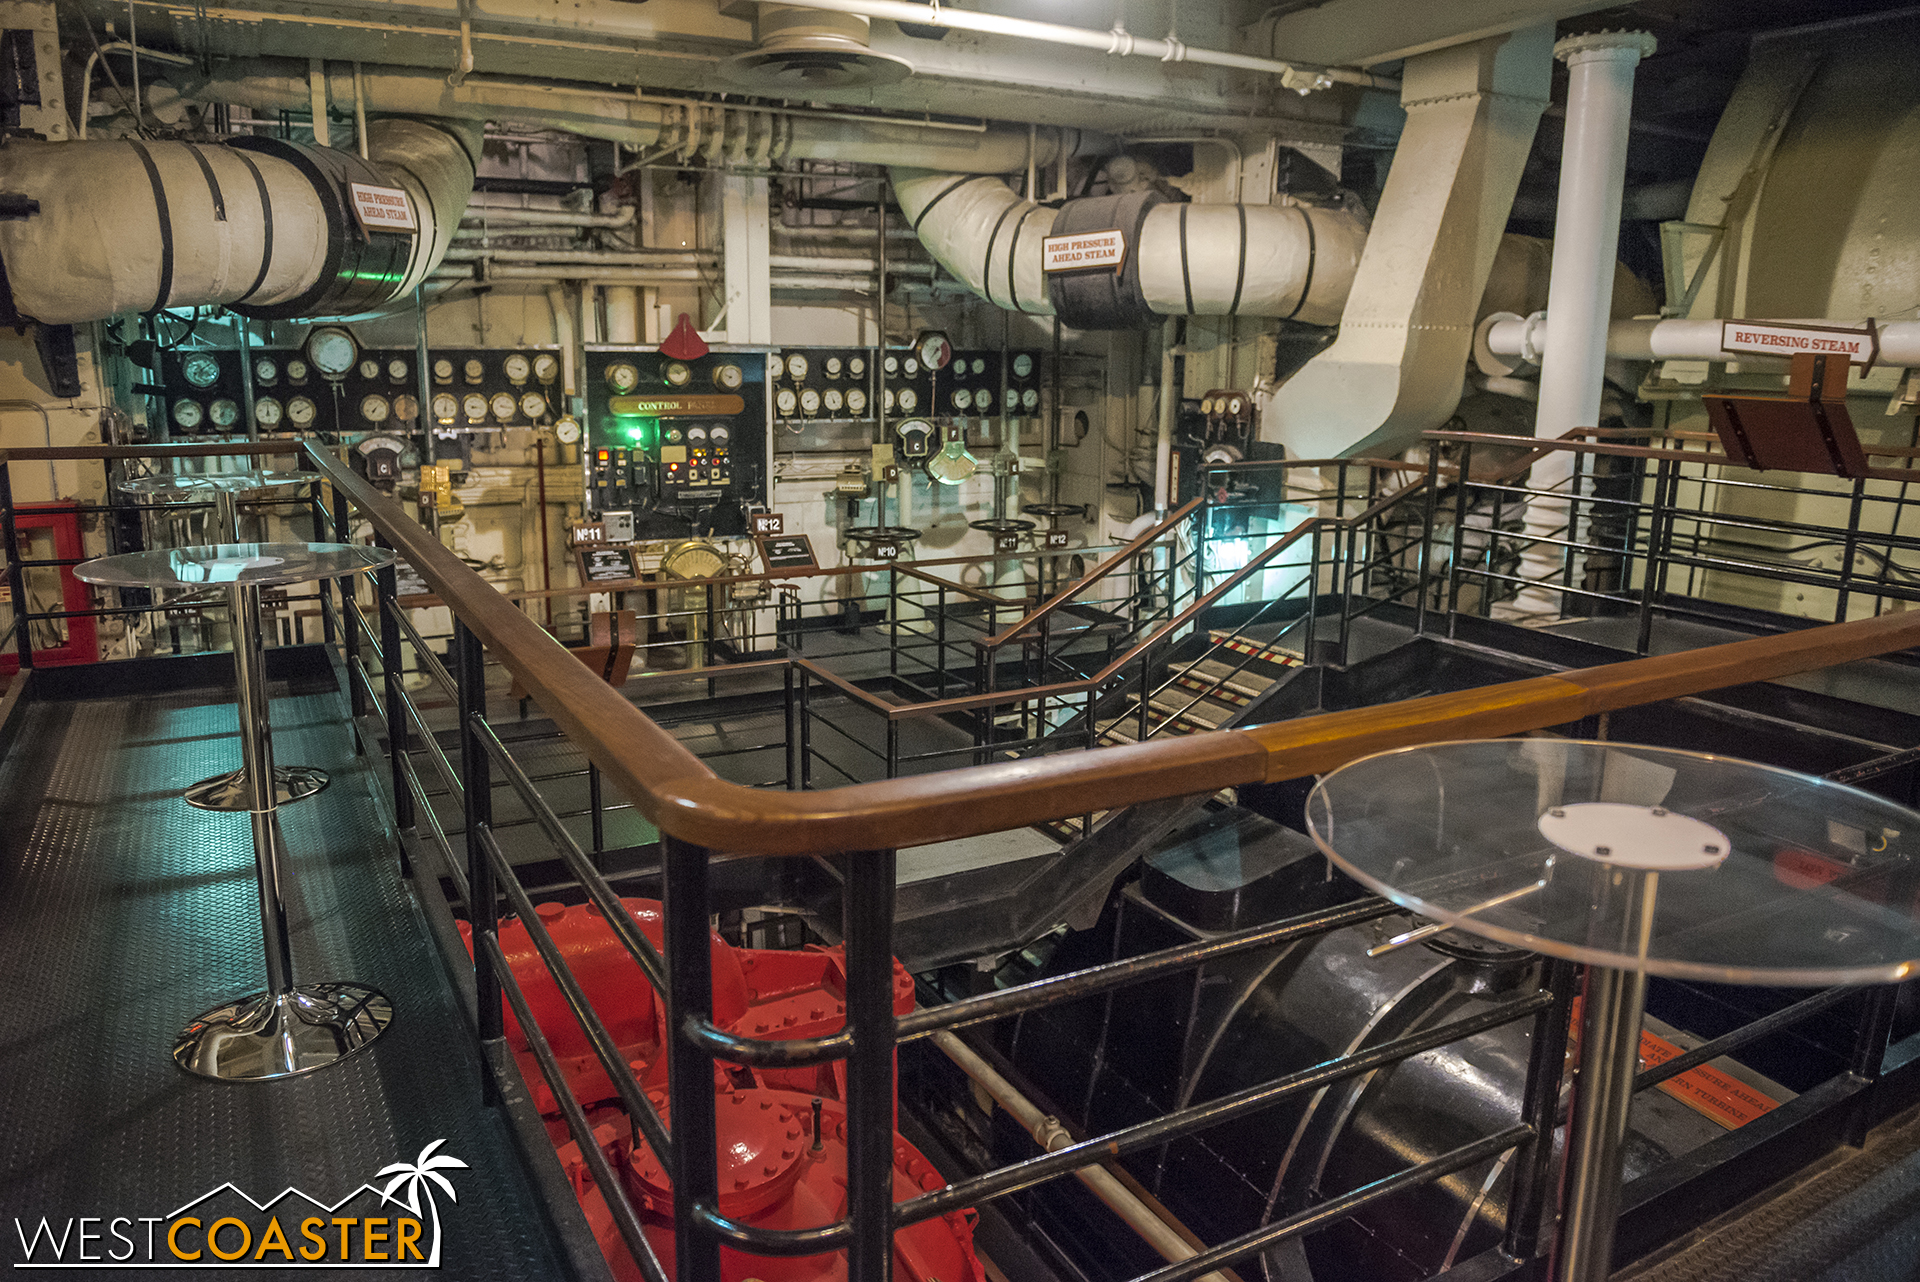 You get a nice view of the Queen Mary's engine room while sipping your potable.